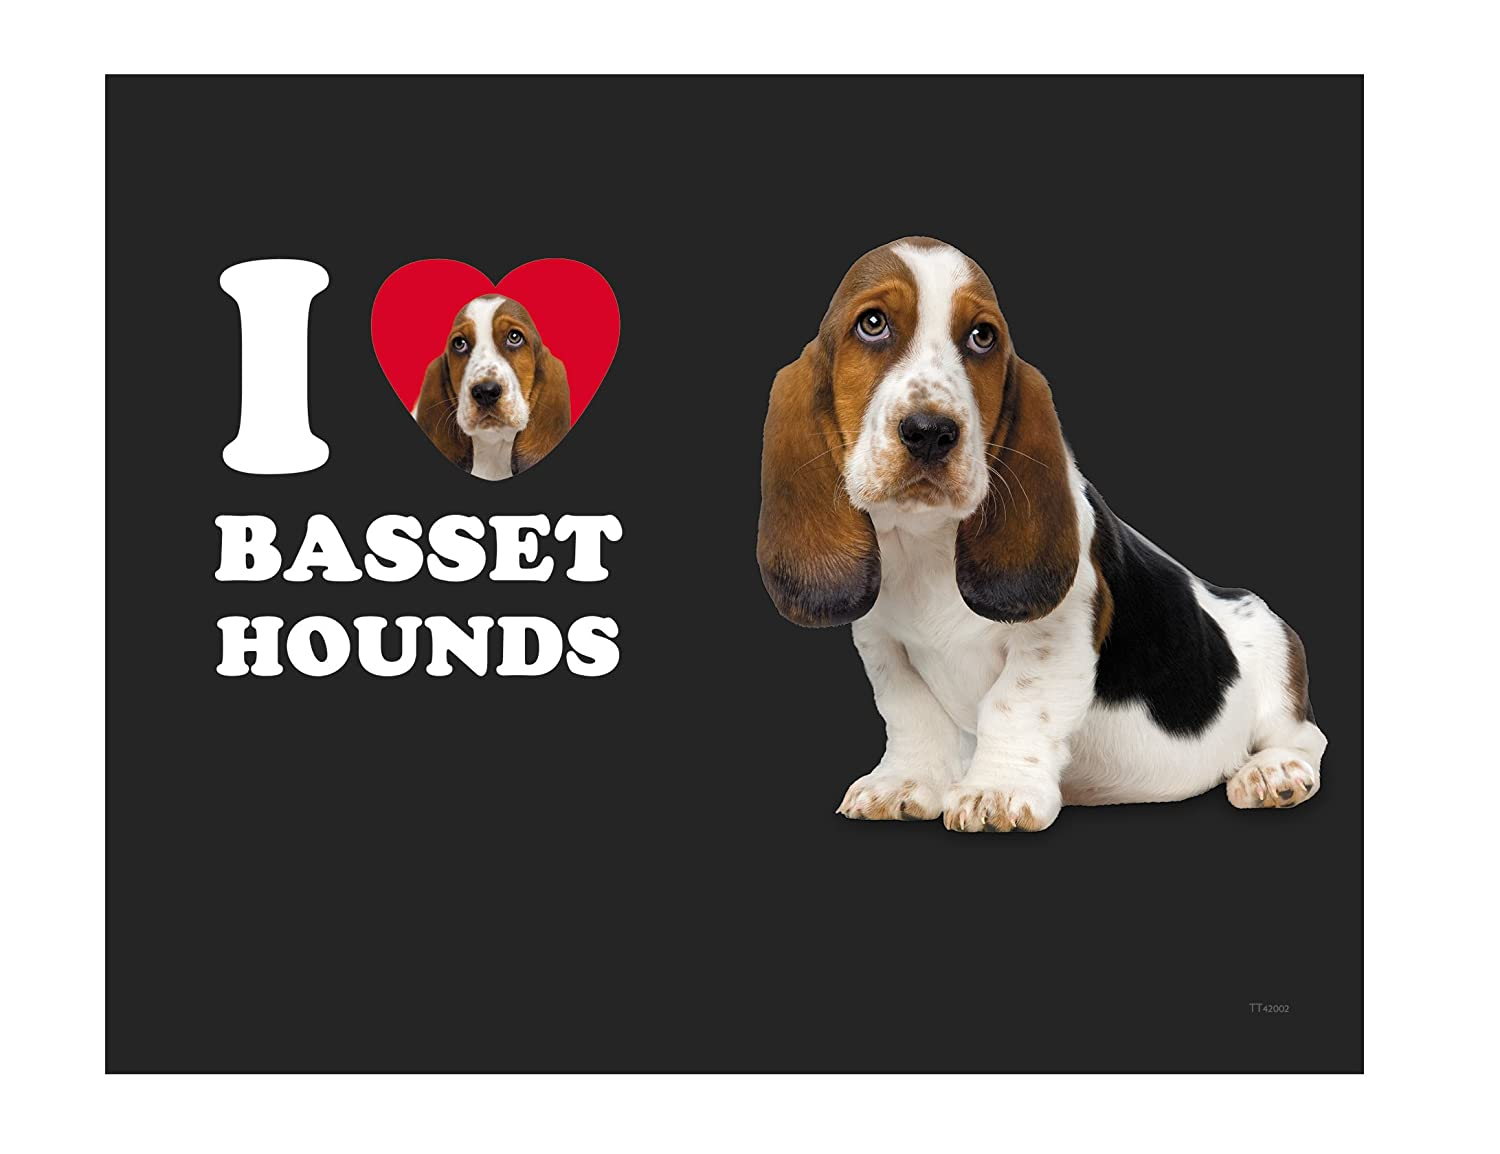 Tree-Free Greetings TT42002 I Heart Basset Hounds 18-8 Double Wall Stainless Artful Tumbler 14-Ounce